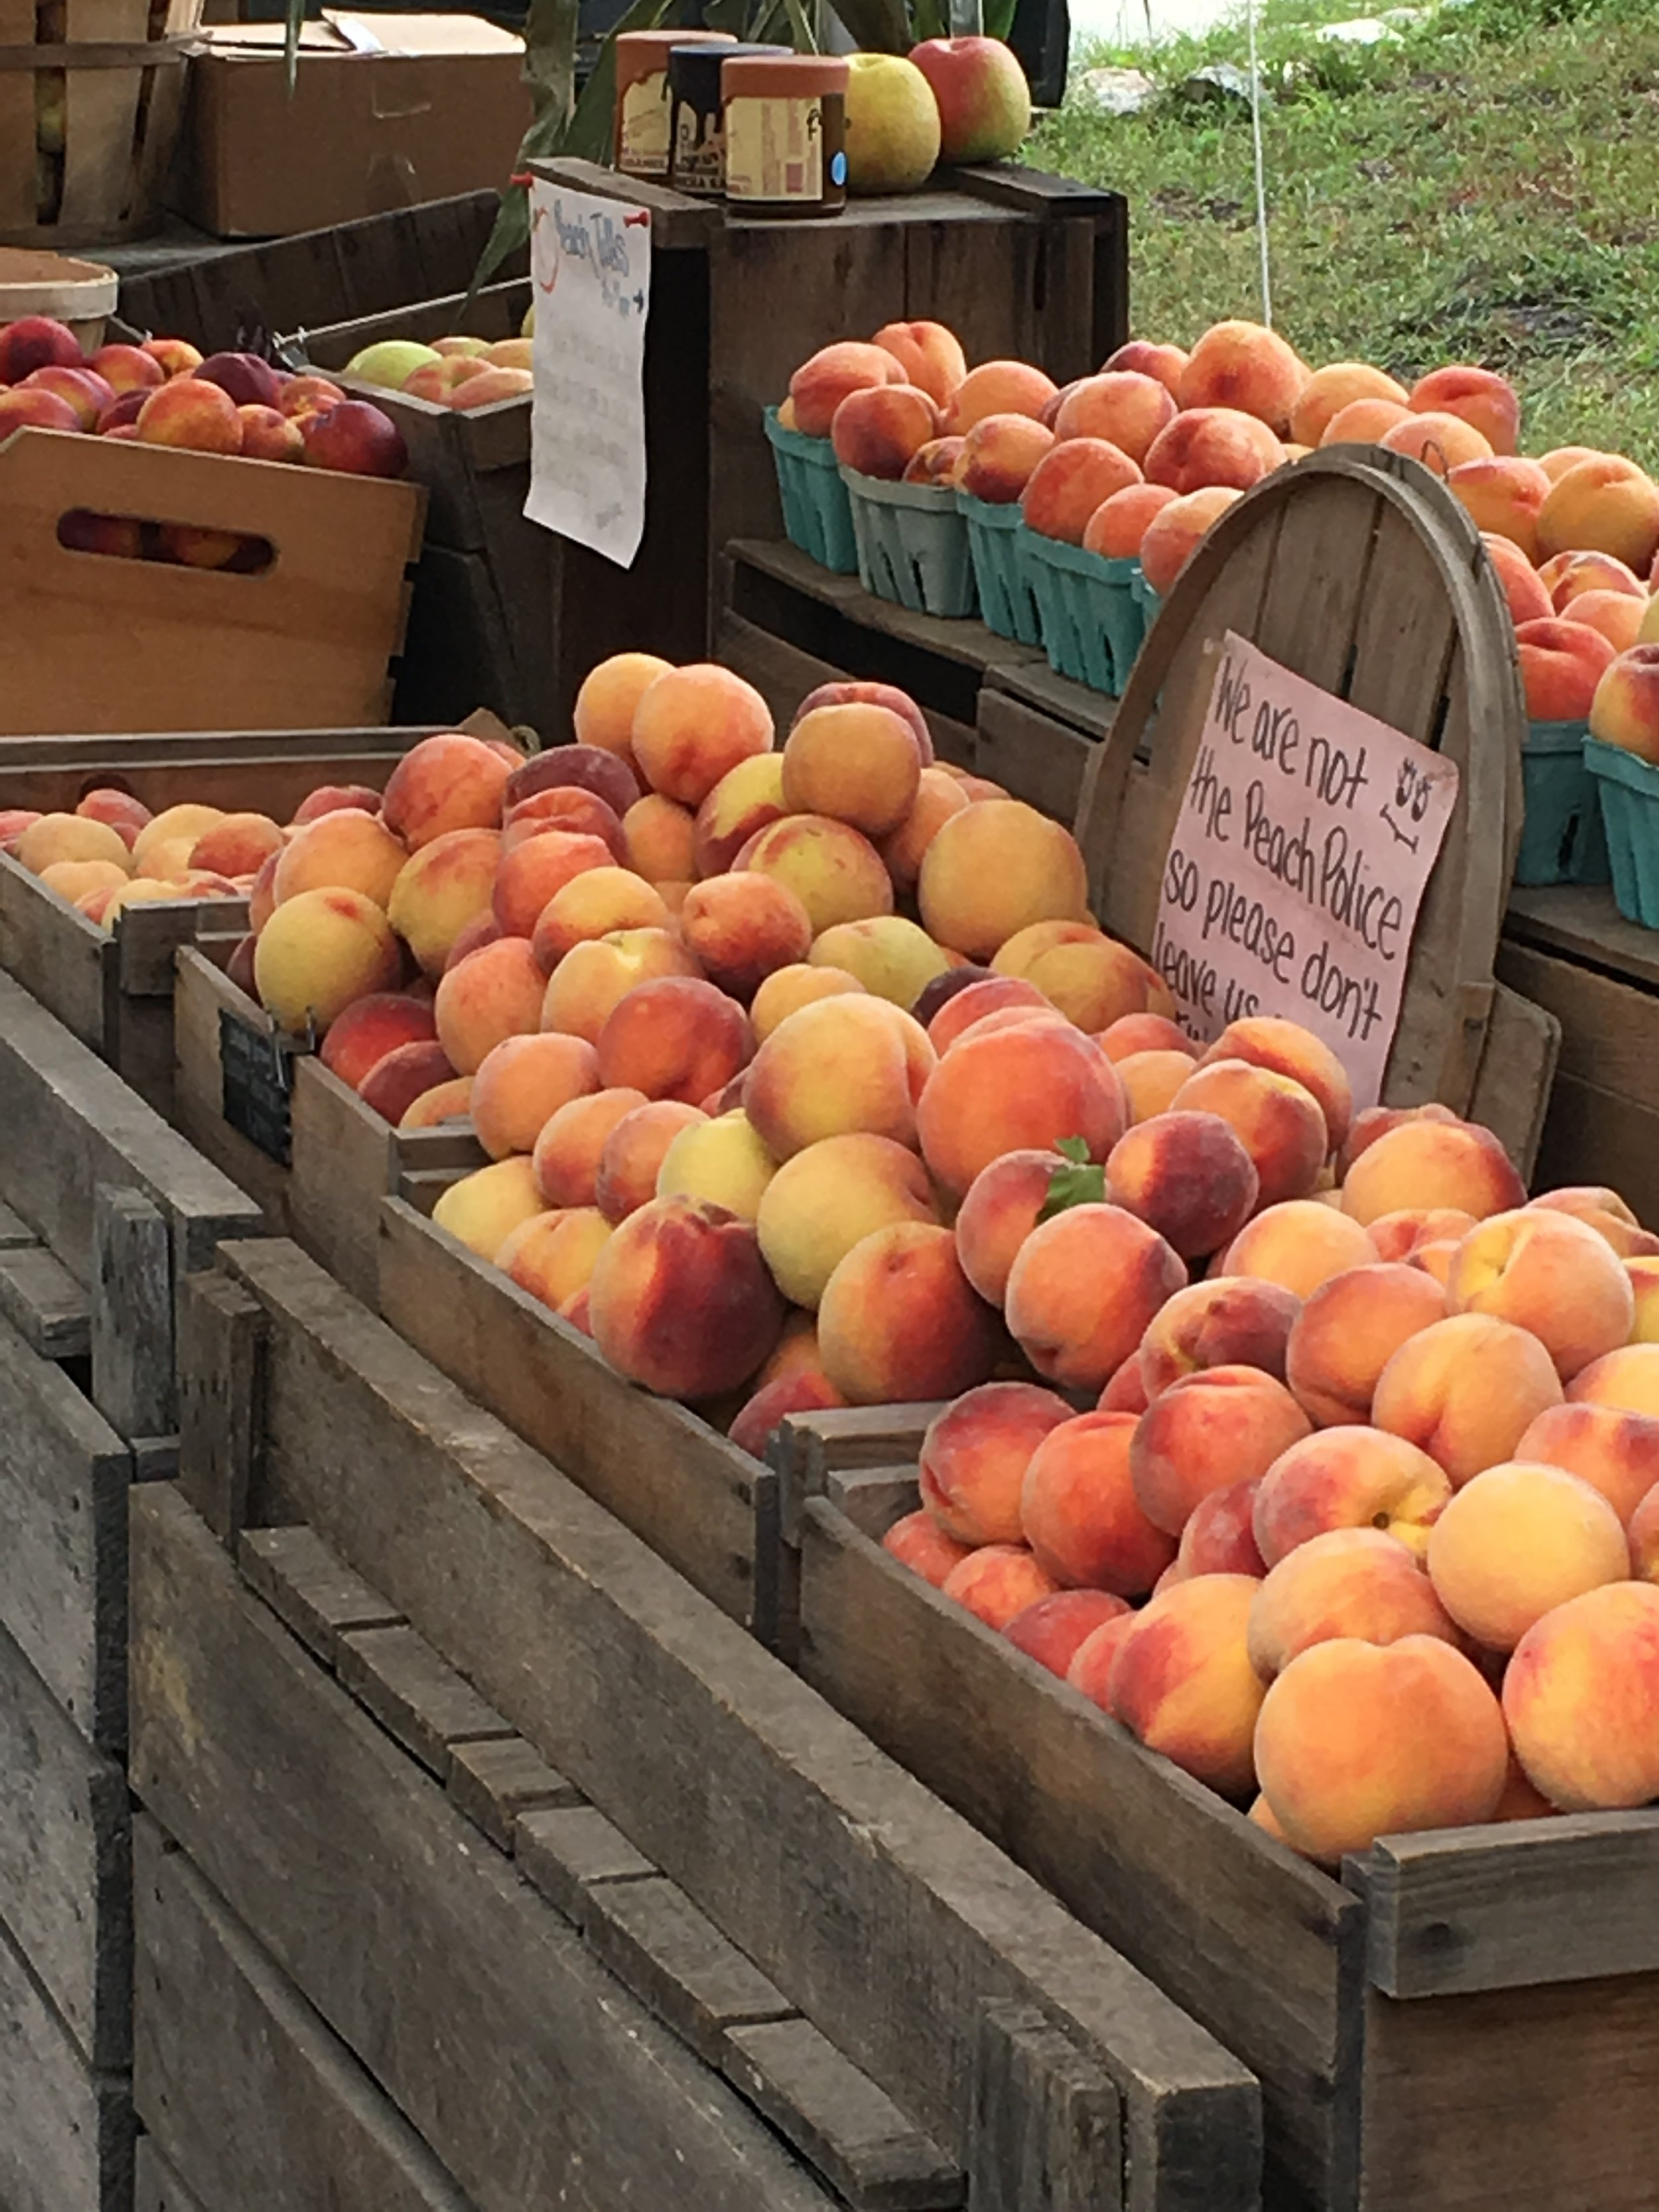 """Our local peaches at a nearby farm stand.  The sign reads """"we are not the peach police so please don't leave us fingerprints!"""""""